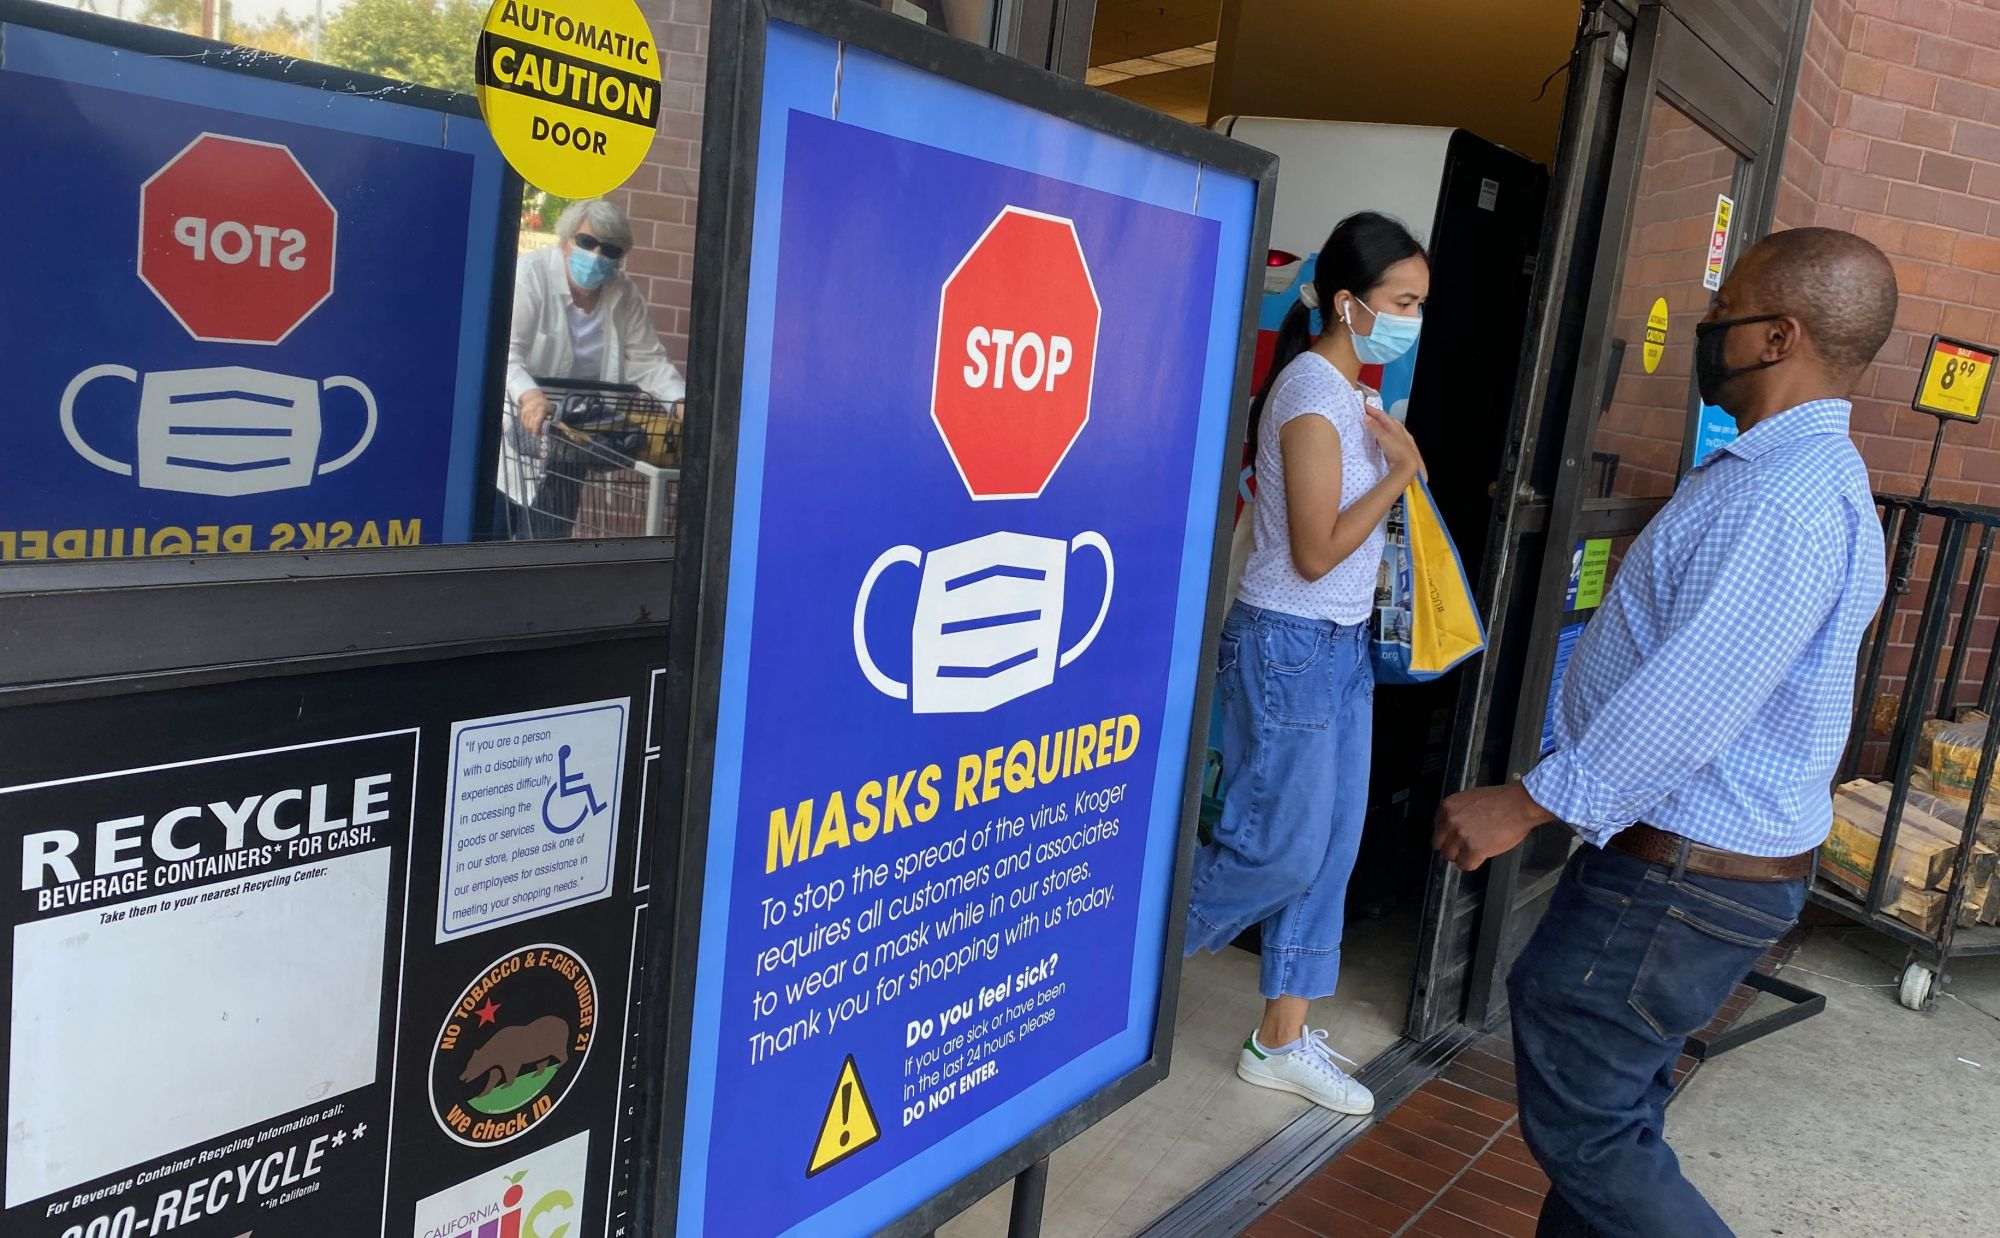 People shop at a grocery store enforcing the wearing of masks in Los Angeles on July 23, 2021. (Chris Delmas / AFP / Getty Images)